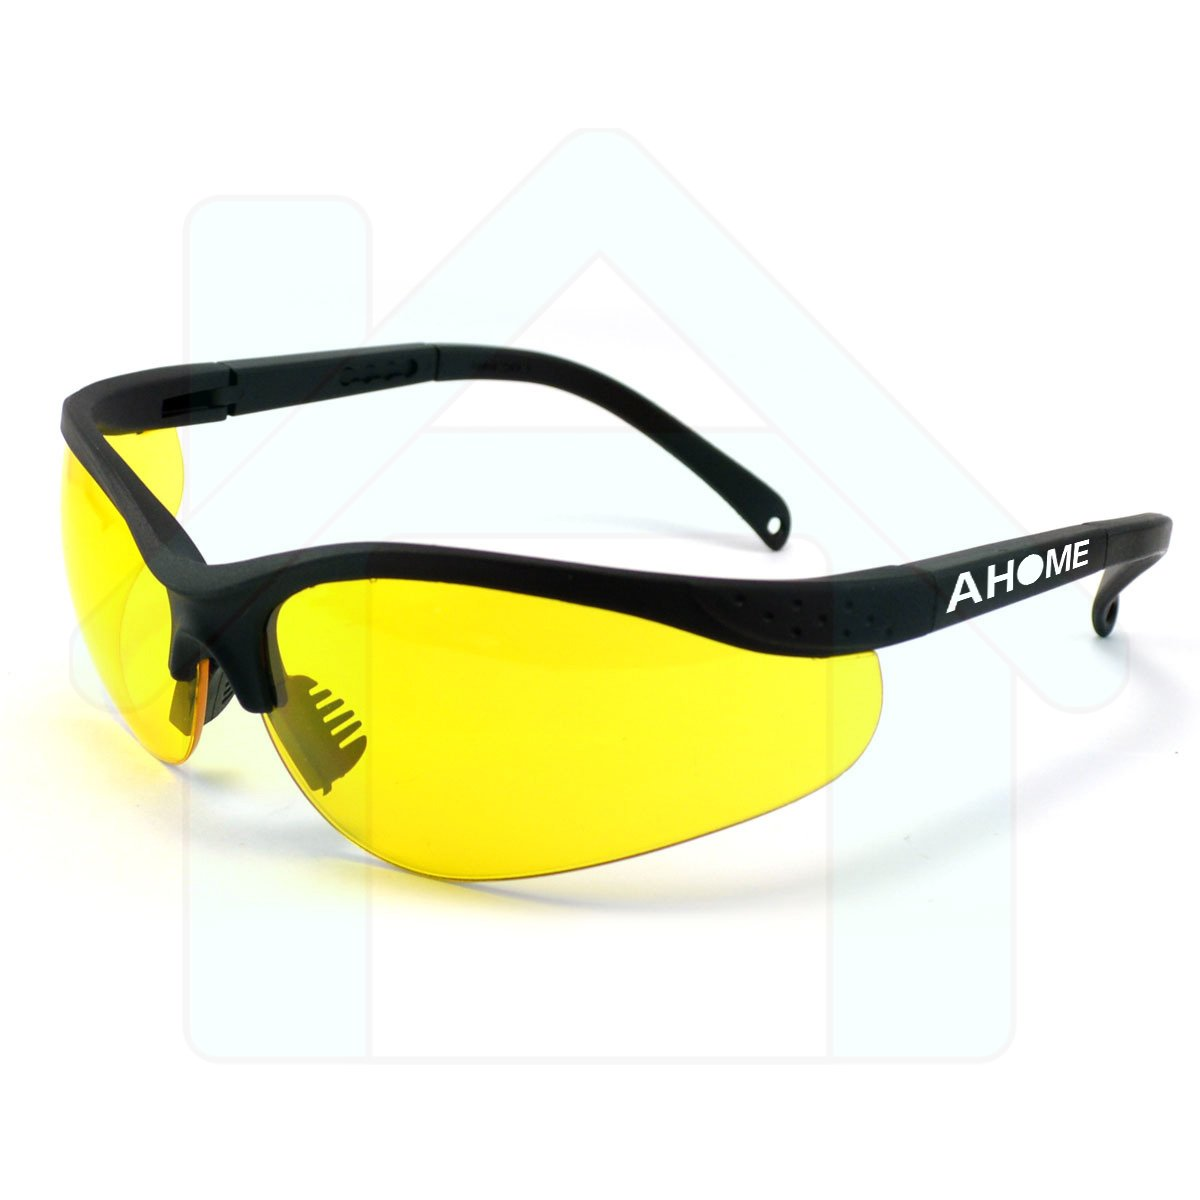 AHOME UV Ray Protection & Night Vision Improvement Adjustable Safety Glasses with Protective Carrying Case